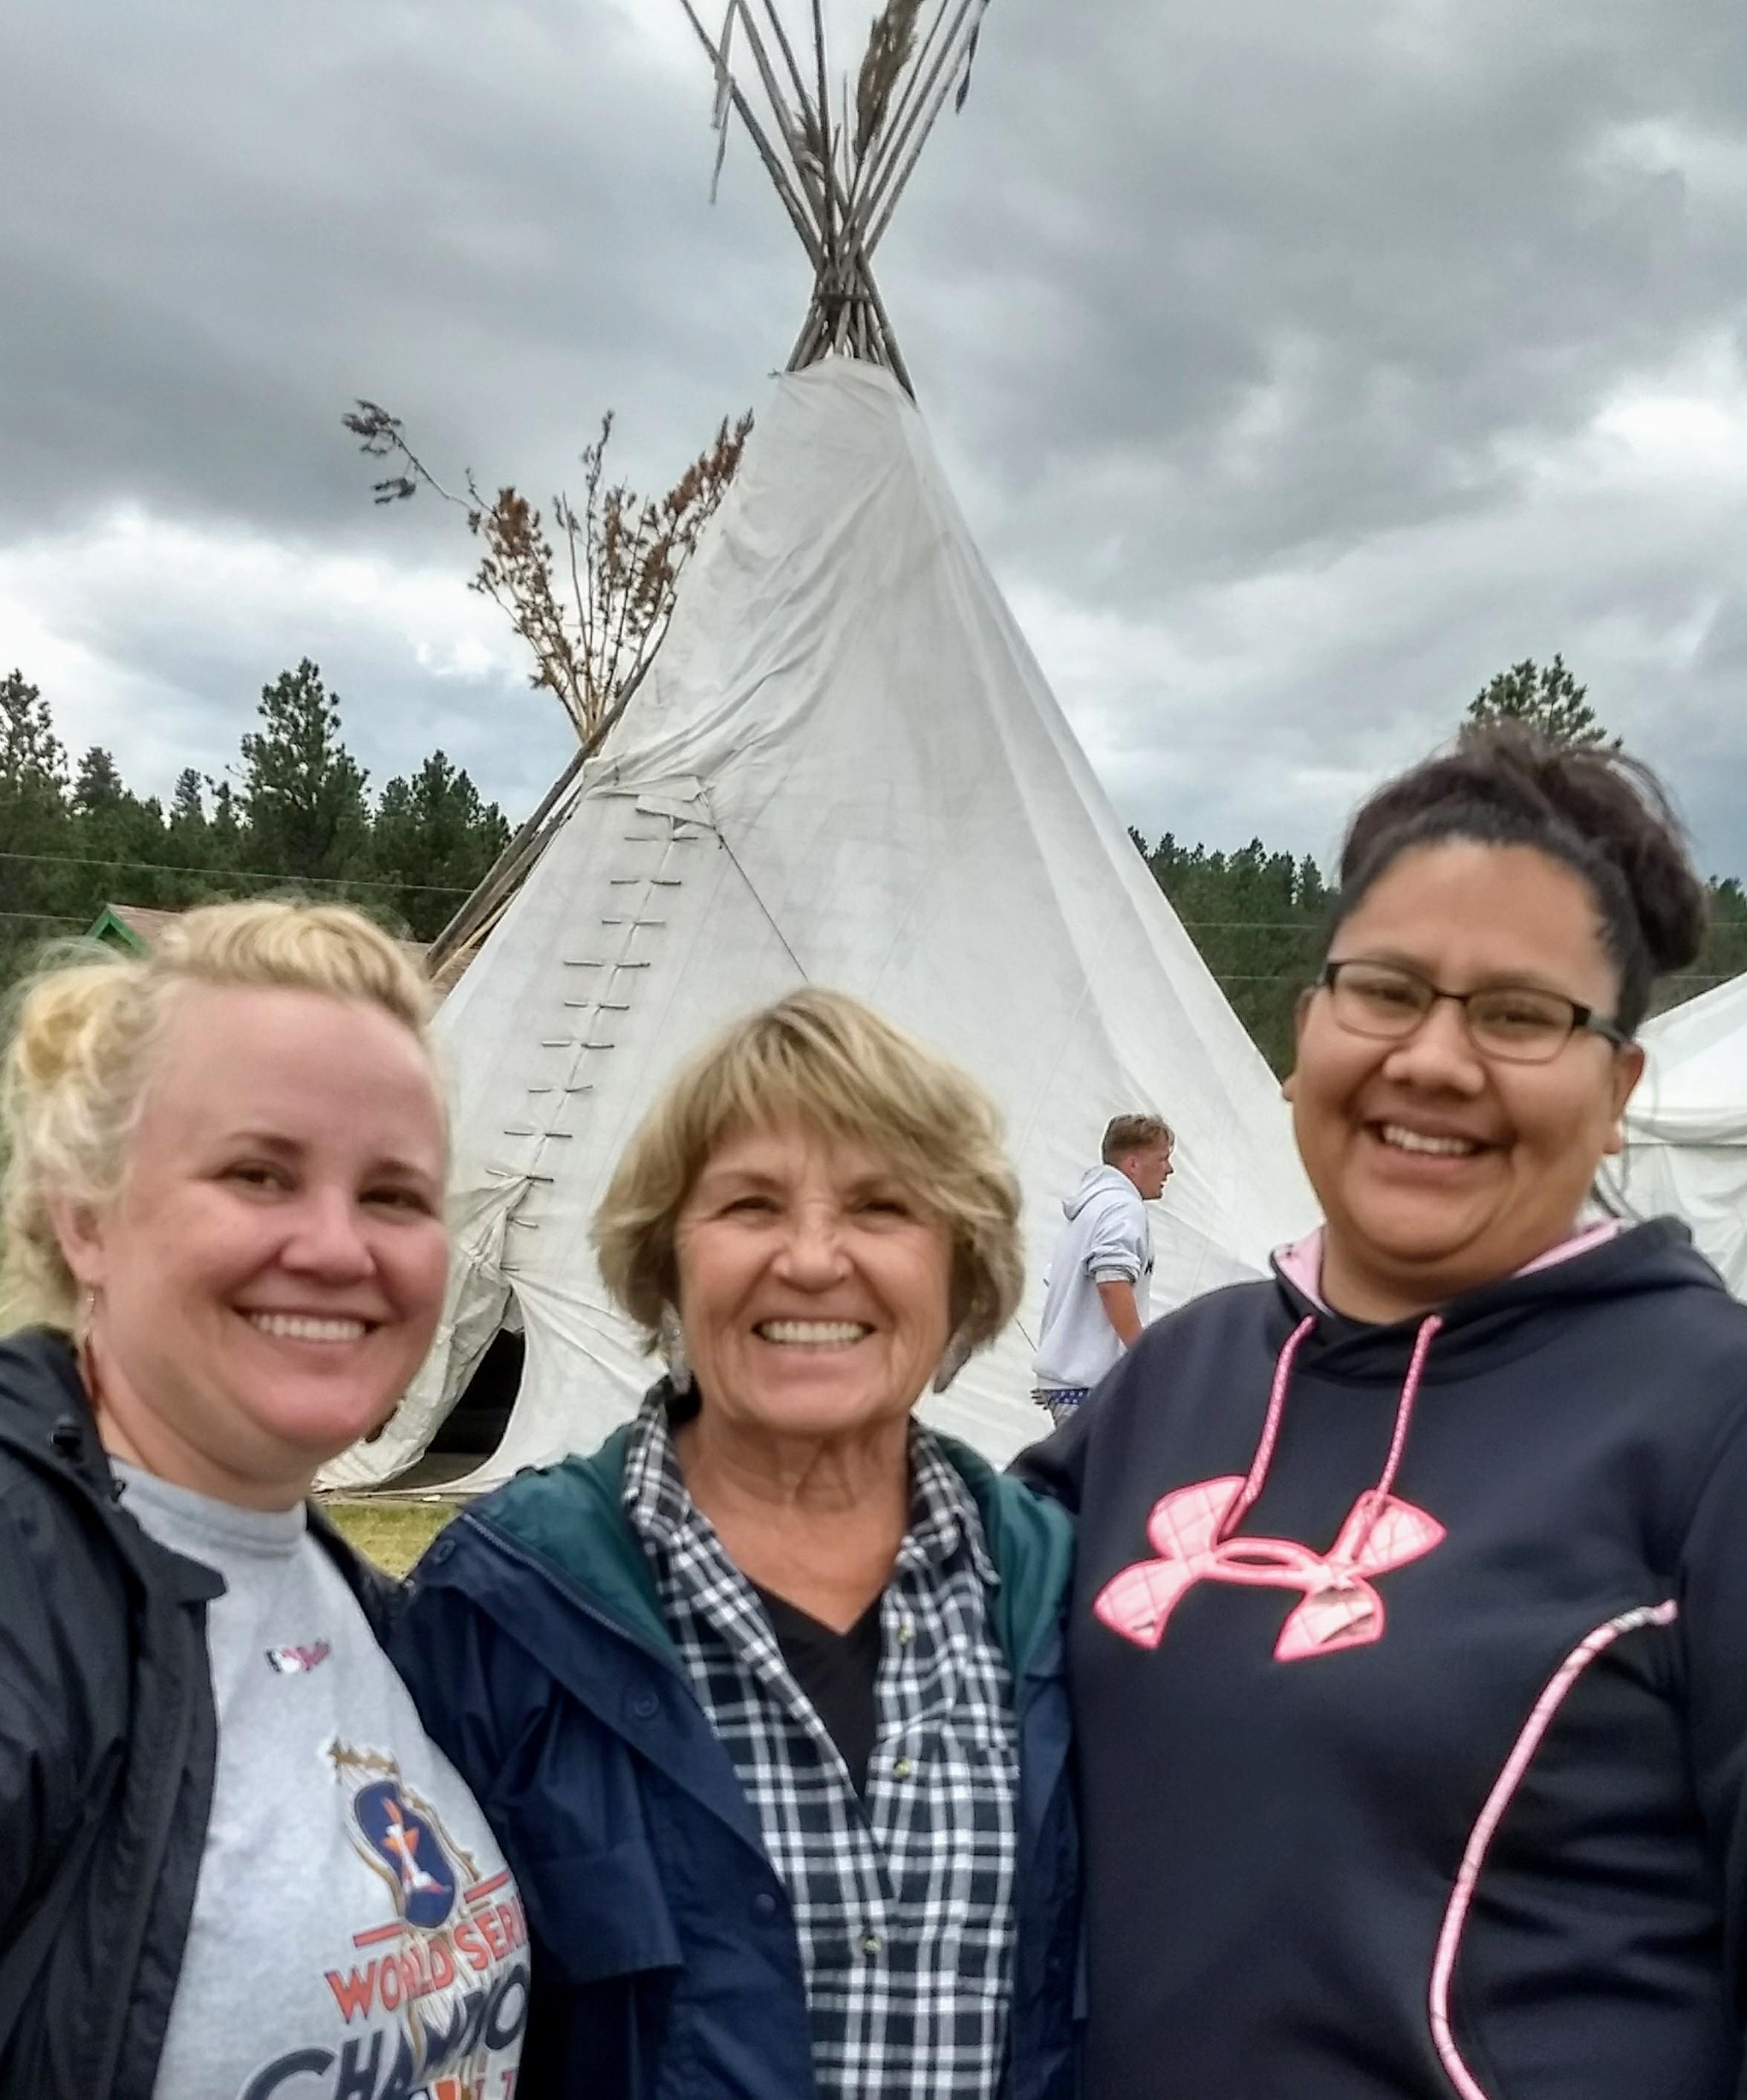 Picture of me in Montana with my mom and new friend.